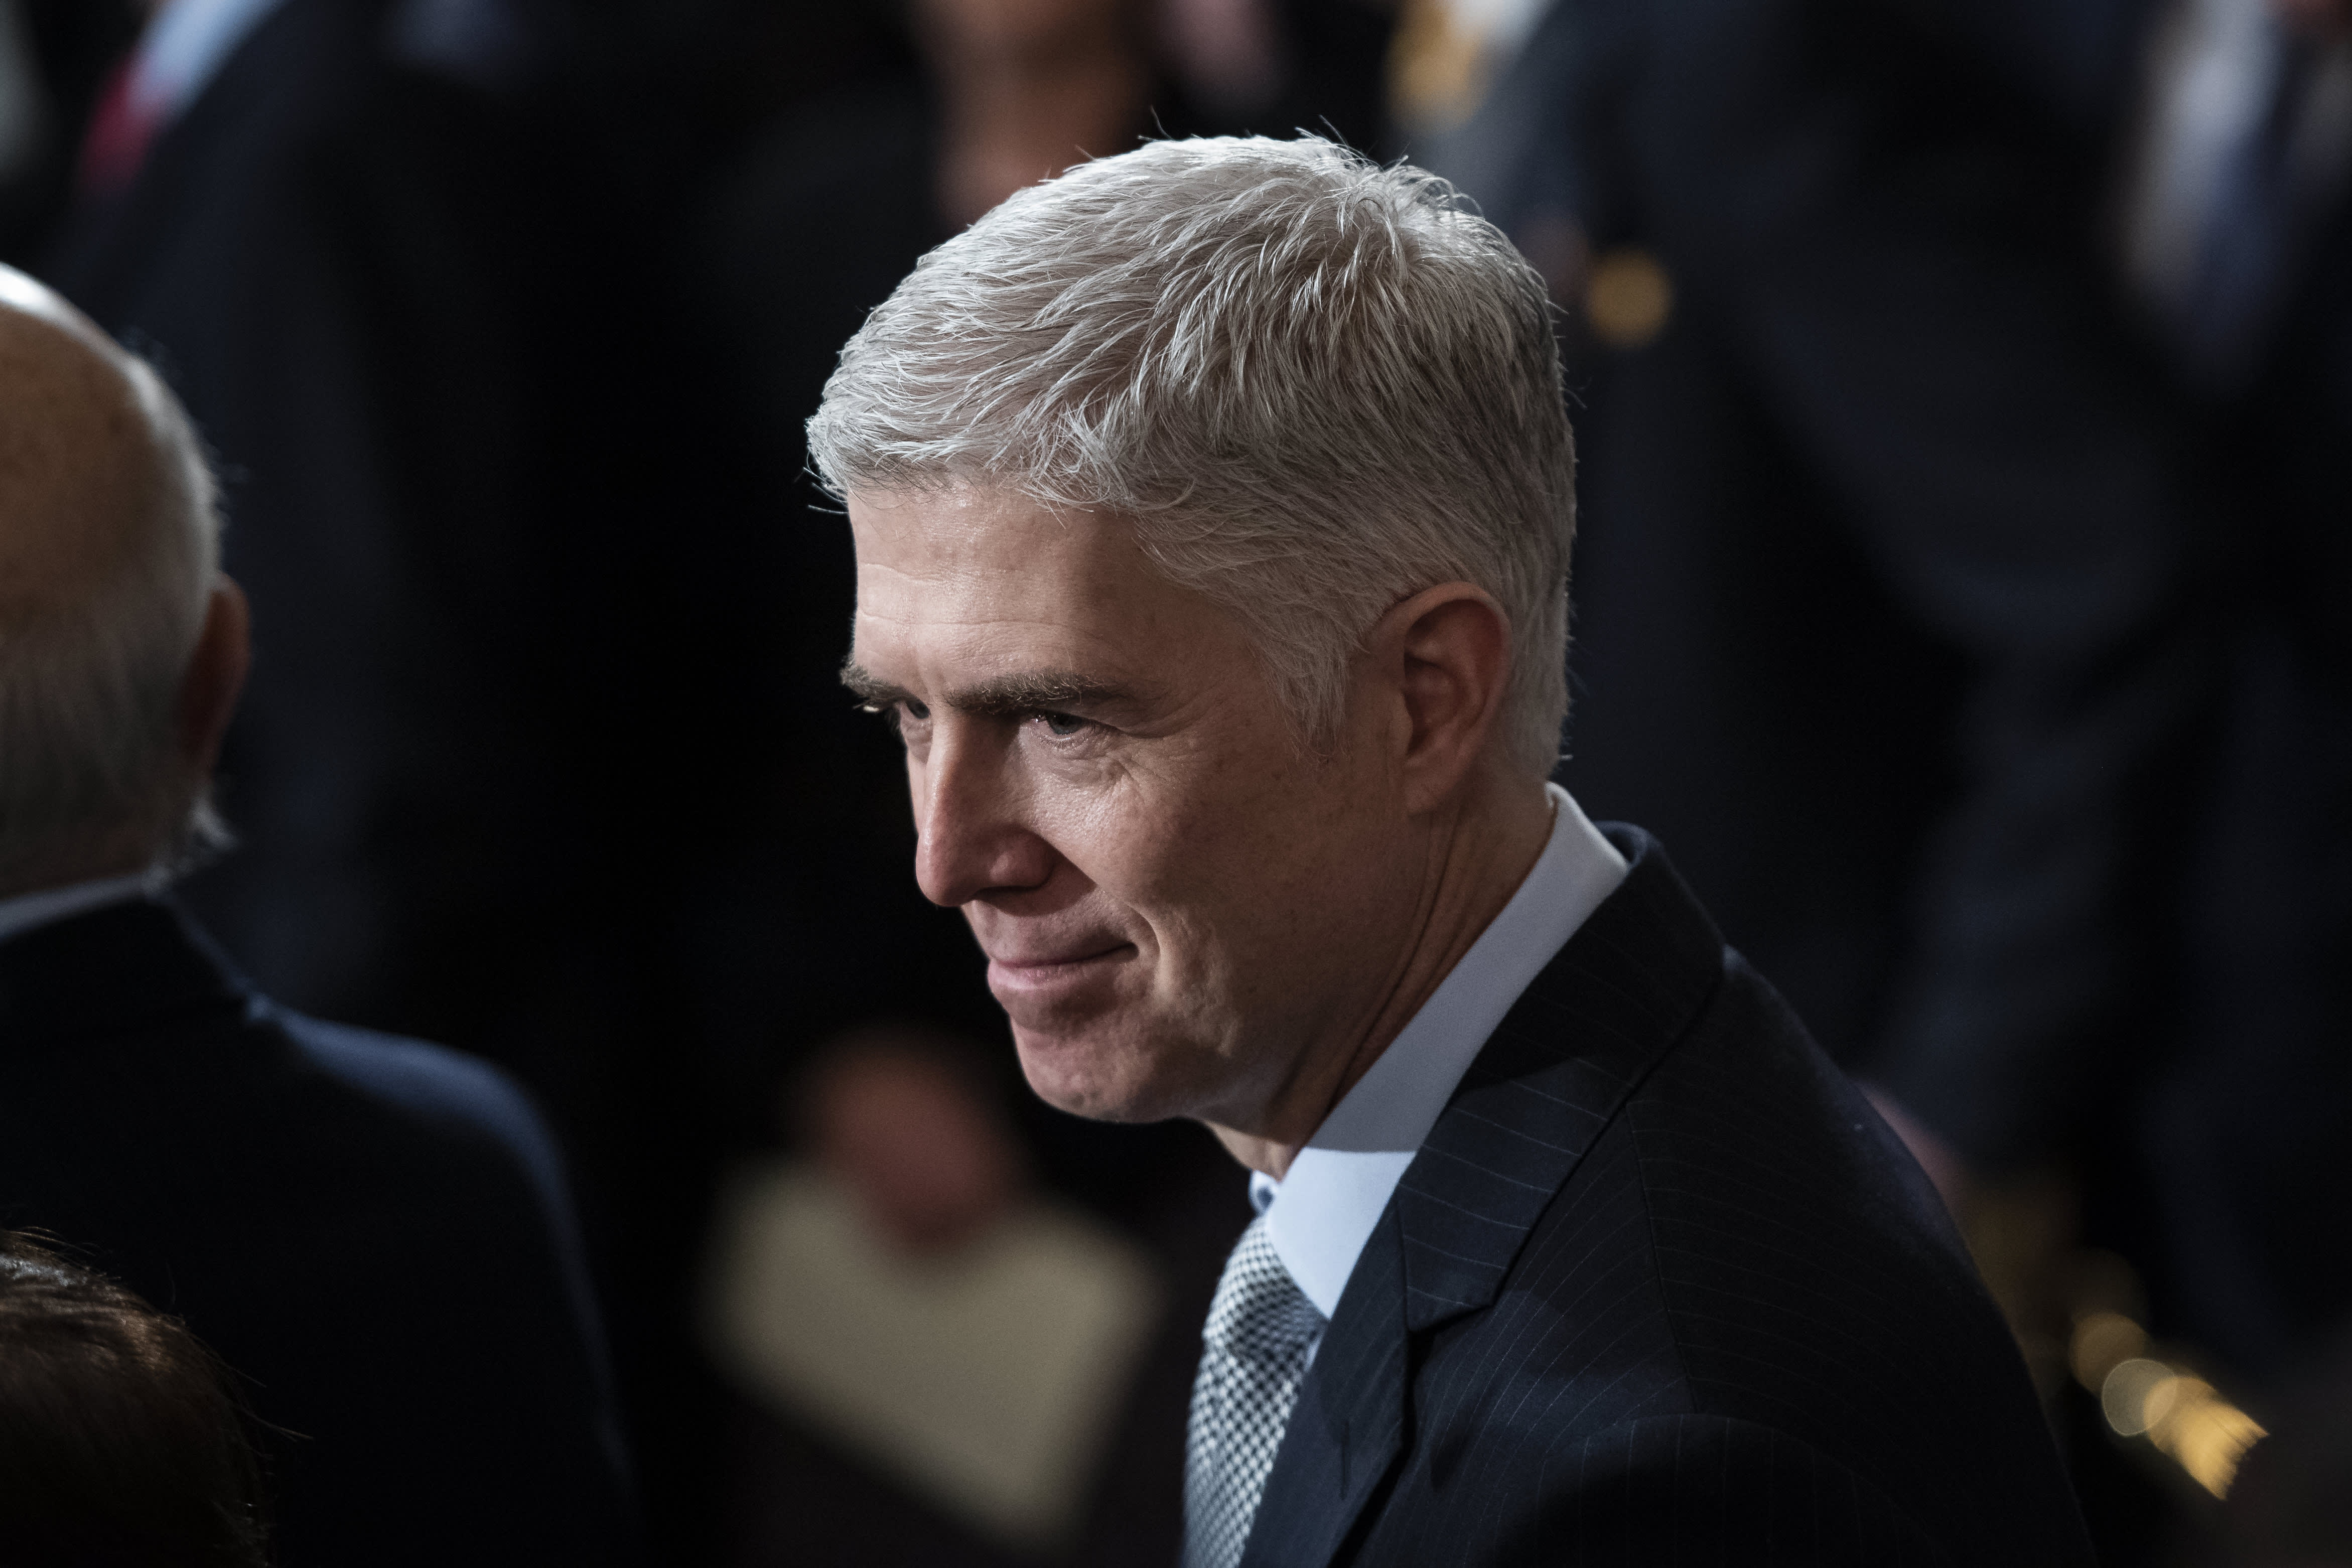 Supreme Court Justice Neil Gorsuch emerges as decisive vote in favor of Native American treaty rights